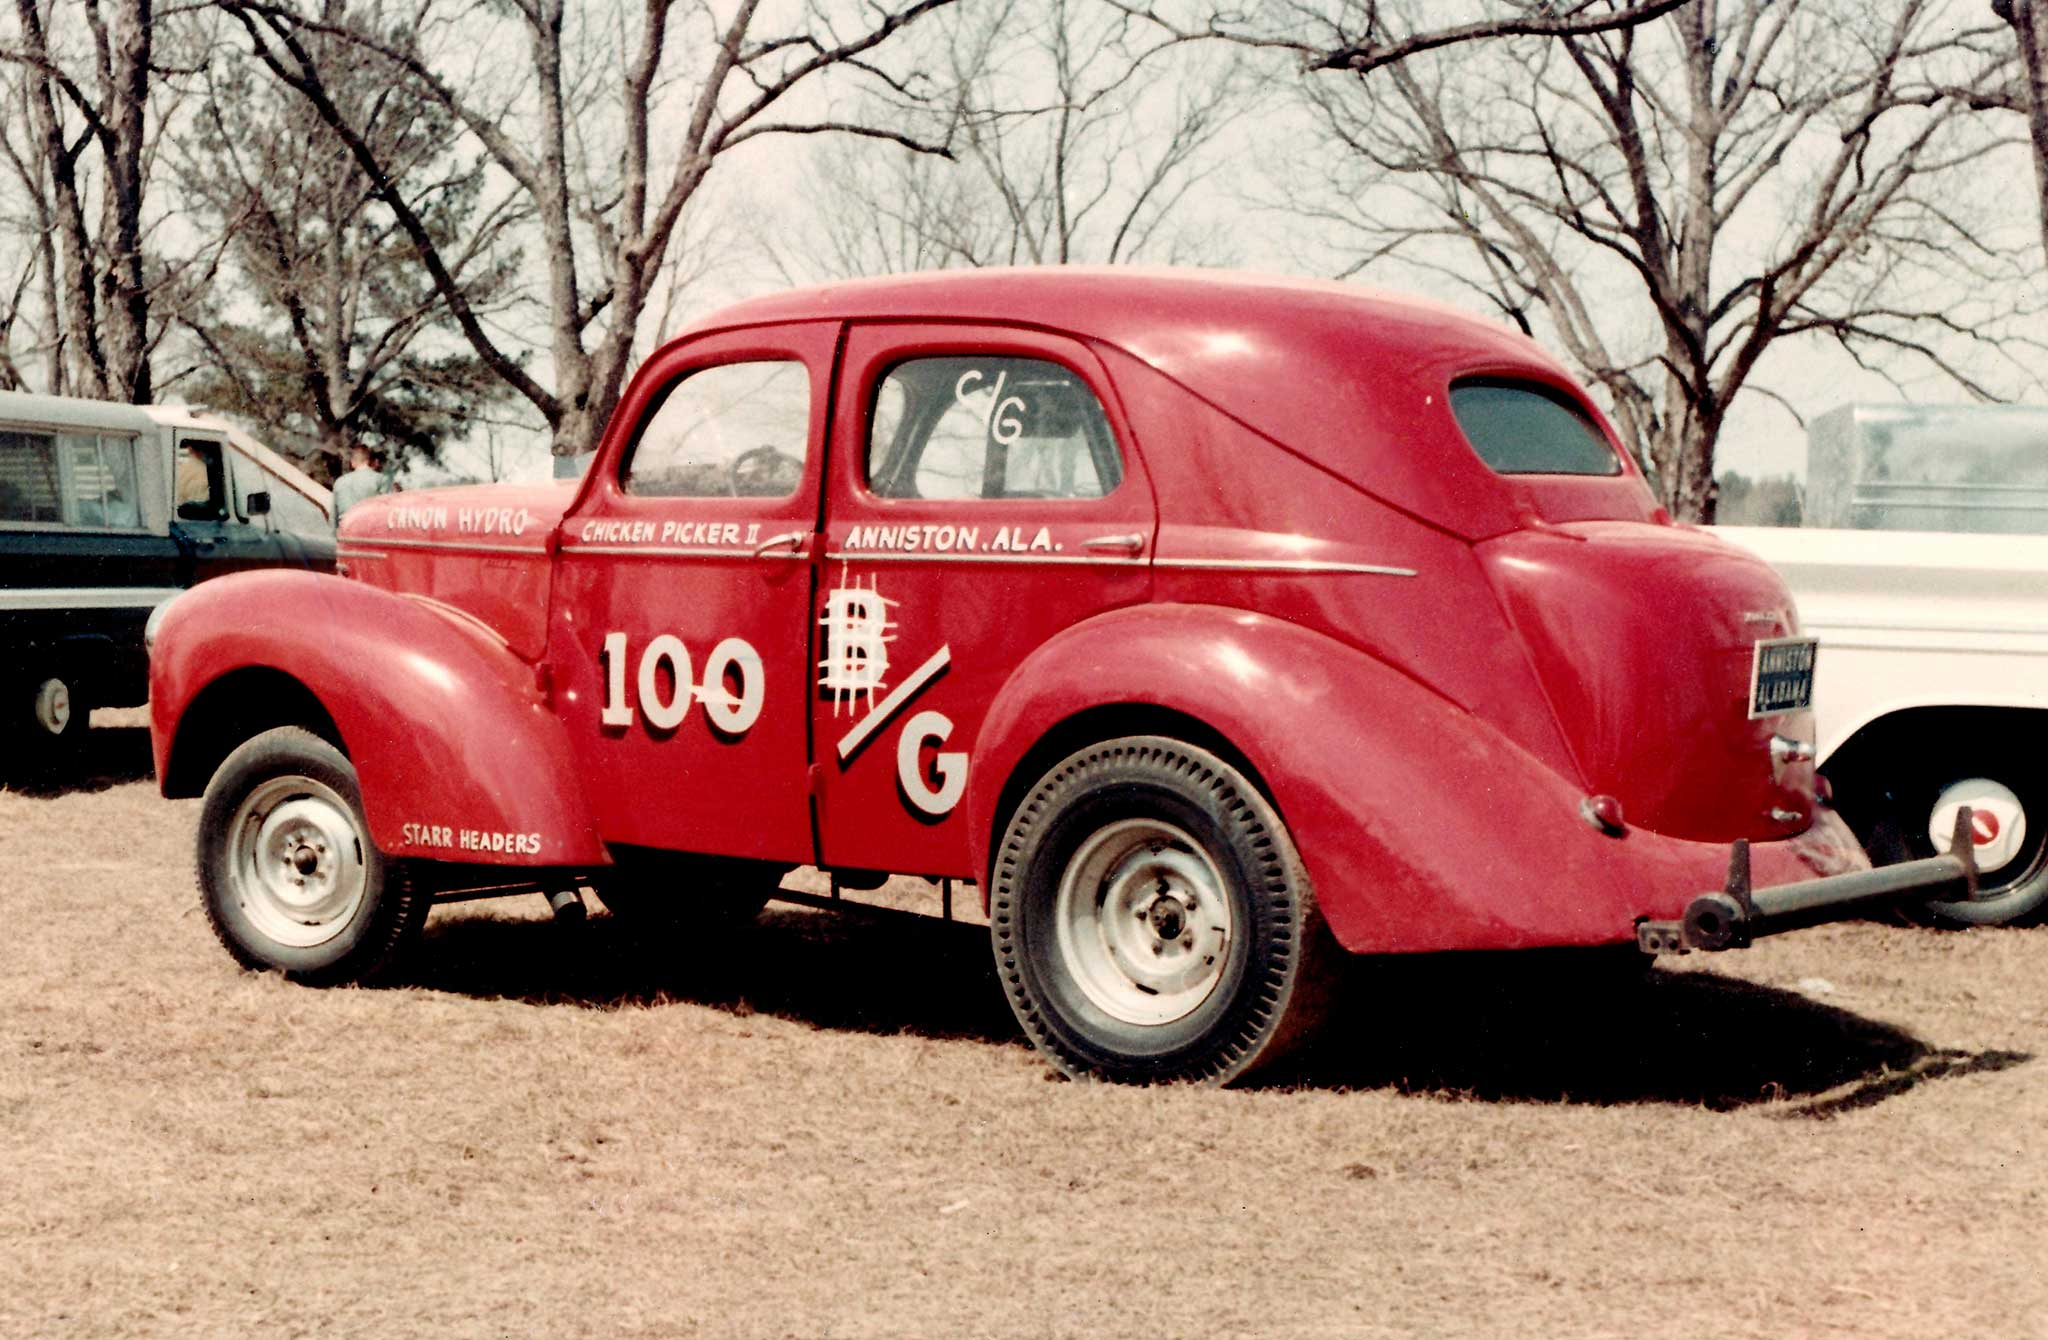 M.A. Madden and son, Bill, gained a national reputation with their homebuilt 1940 Willys sedan out of Anniston, Alabama. Dubbed The Chicken Pickers (Madden owned a poultry farm and processer), the '40 ran as a Gasser and in D/Altered, and was an NHRA record-holder and serious threat at any race.